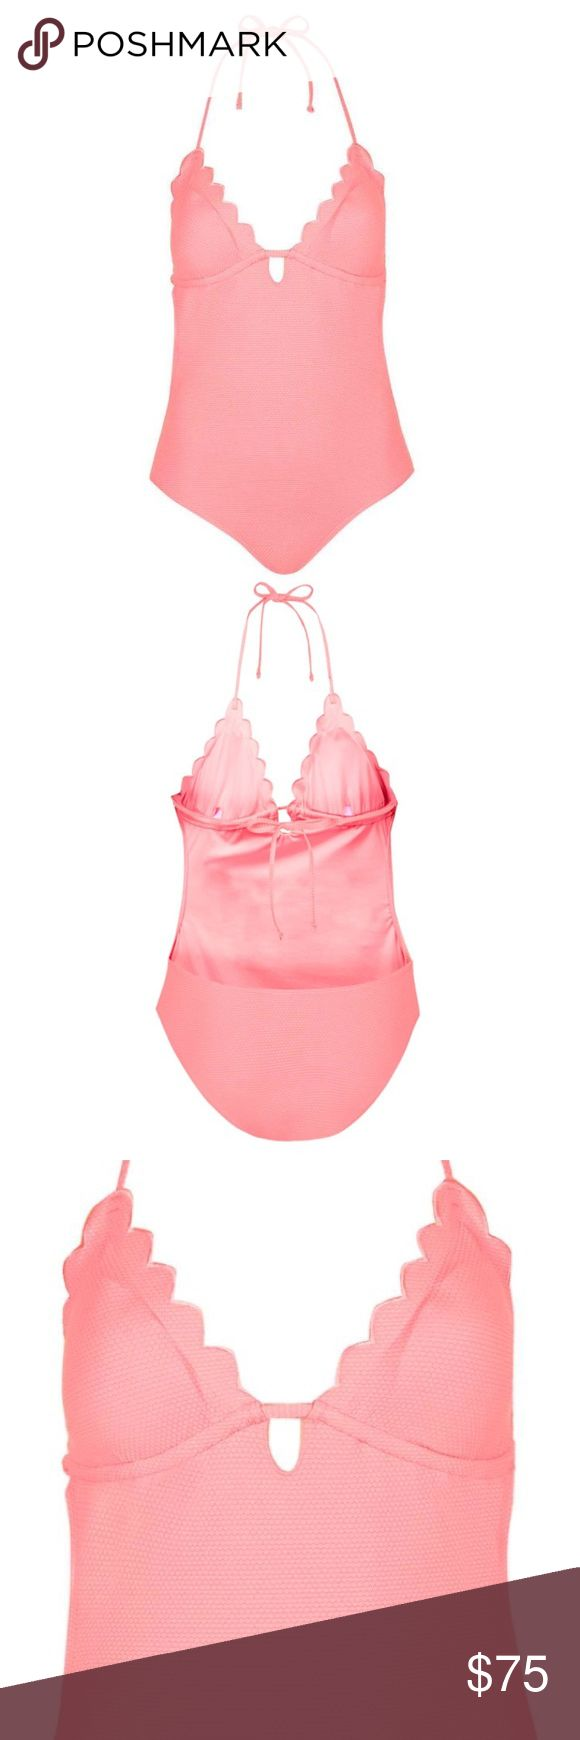 TOPSHOP Pink Scallop Swimsuit Petite pink swimsuit with scallop edged cups and removable halter straps. 94% Polyamide, 6% Elastane. Machine wash. Colour: PINK   LIKE NEW NEVER WORN! Topshop Swim One Pieces